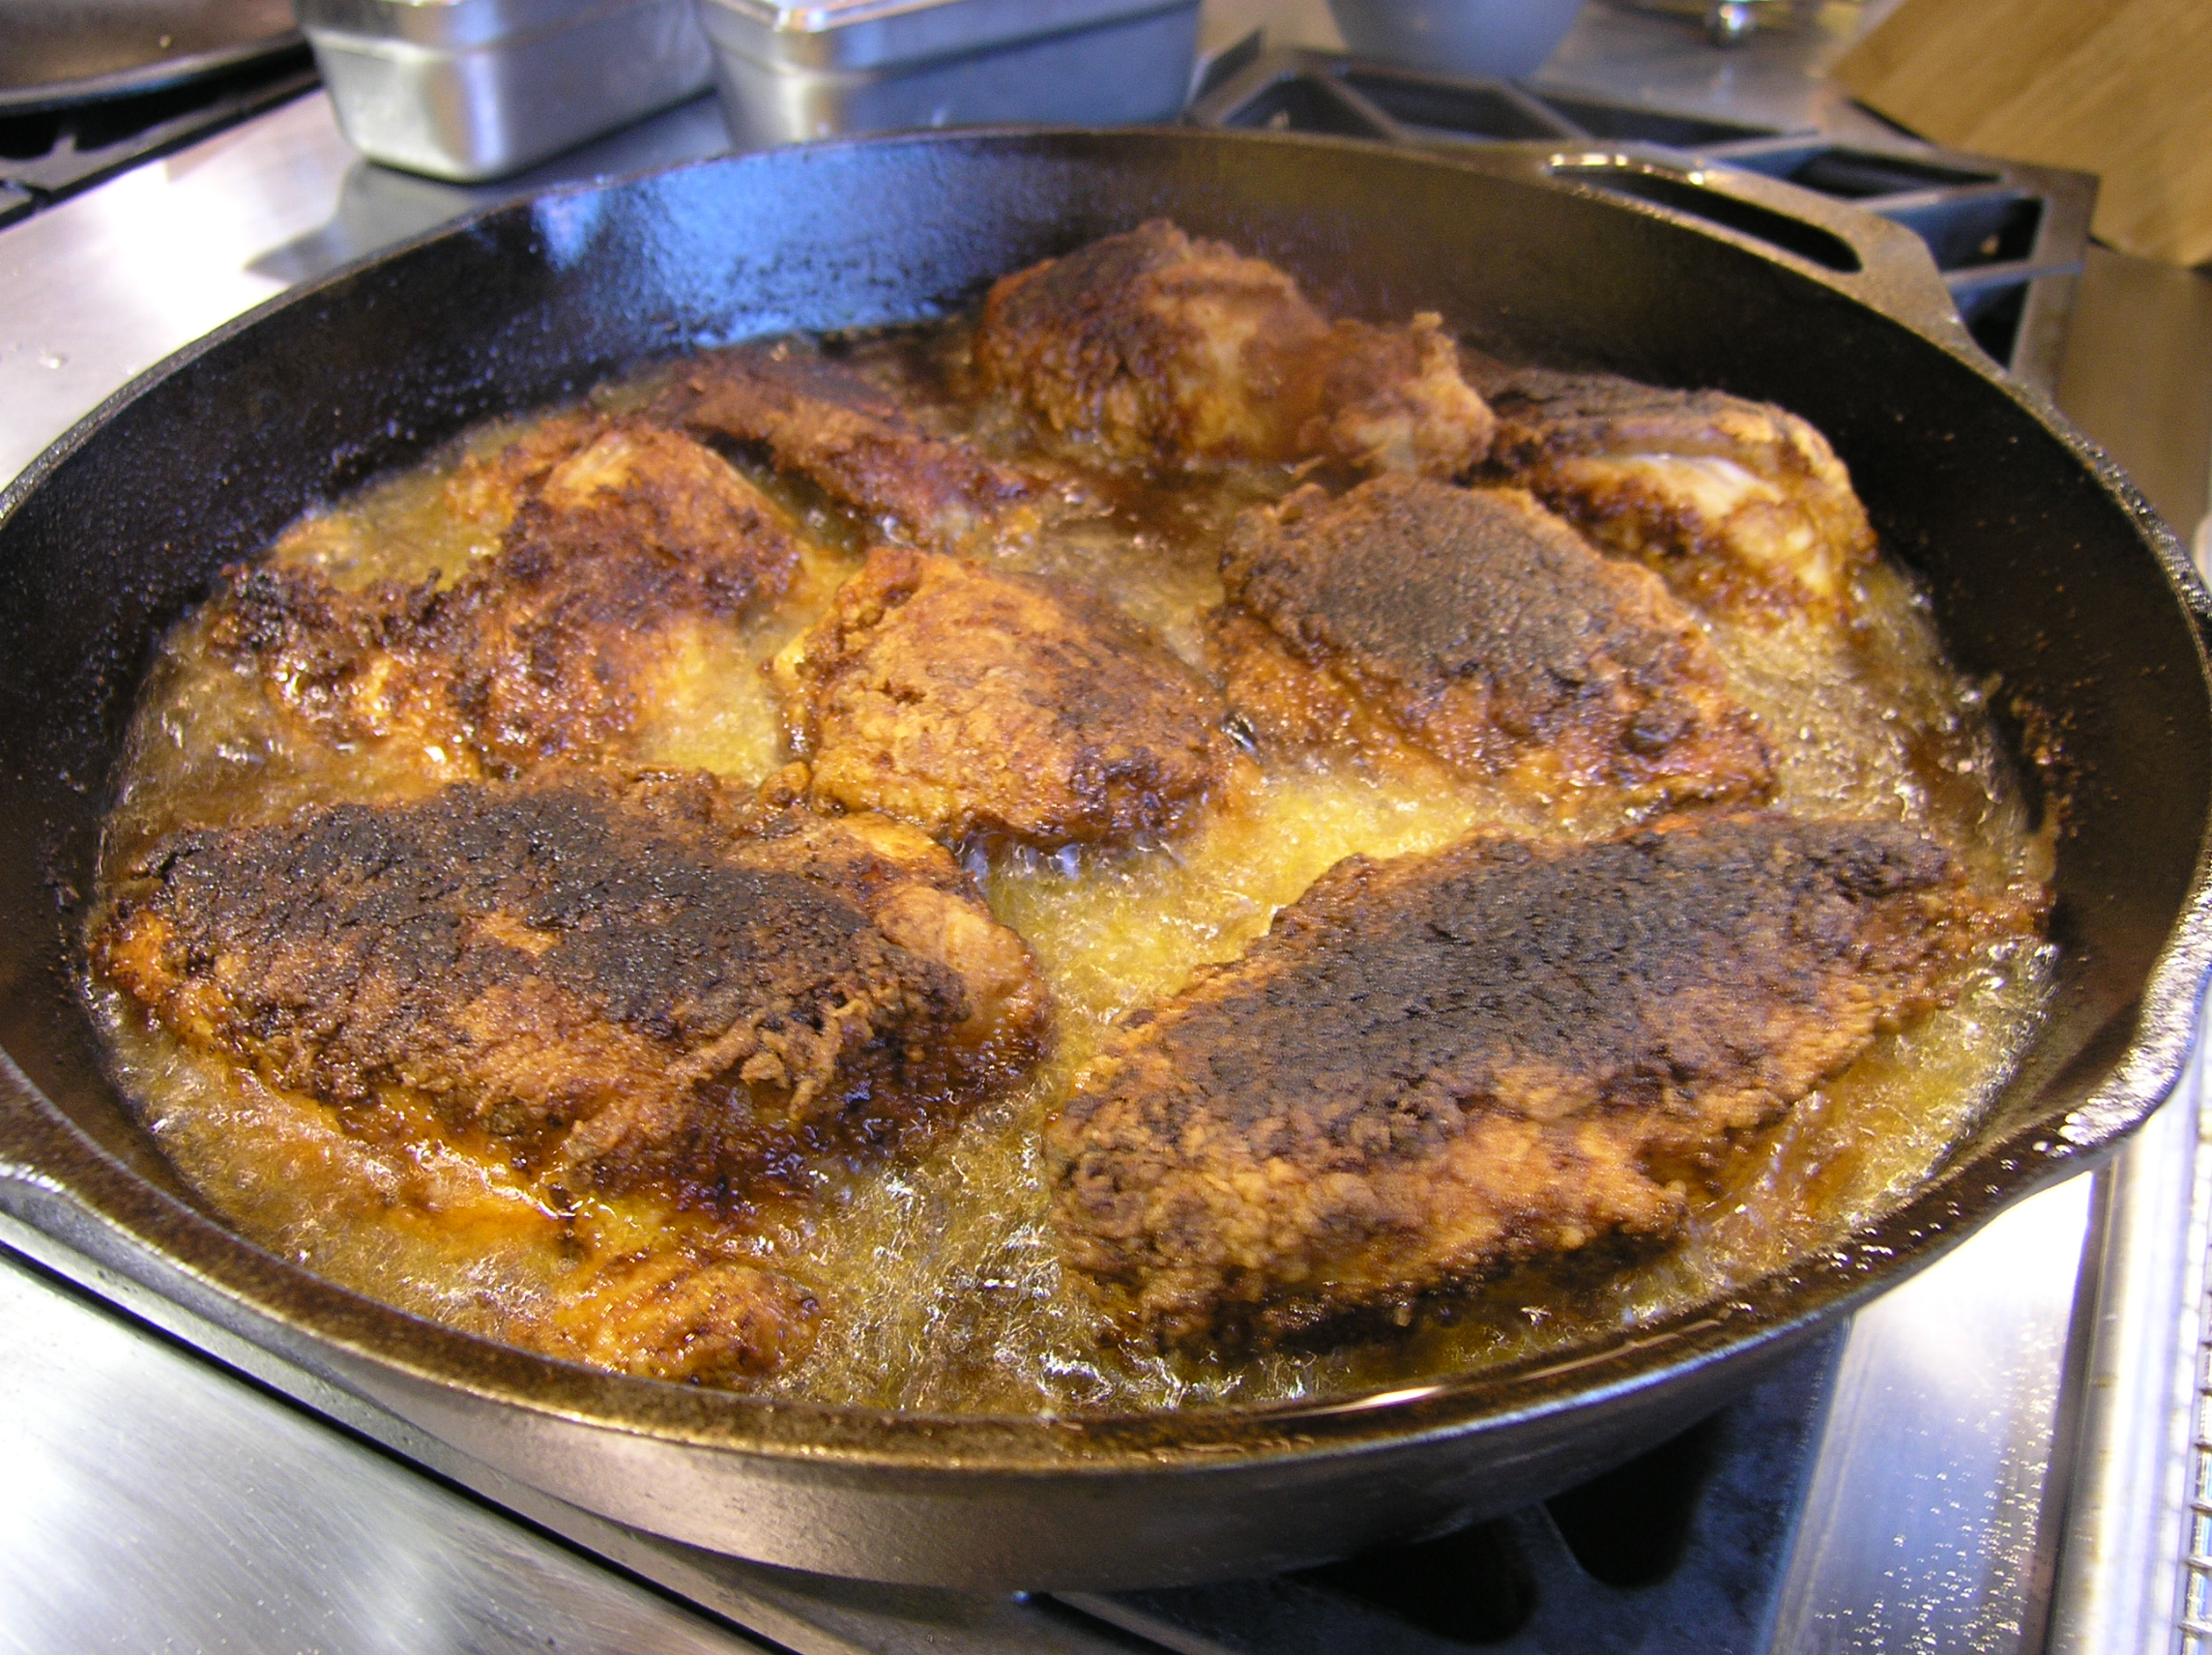 Fried chicken frying in a cast-iron skillet on the set of Alton Brown's Good Eats.